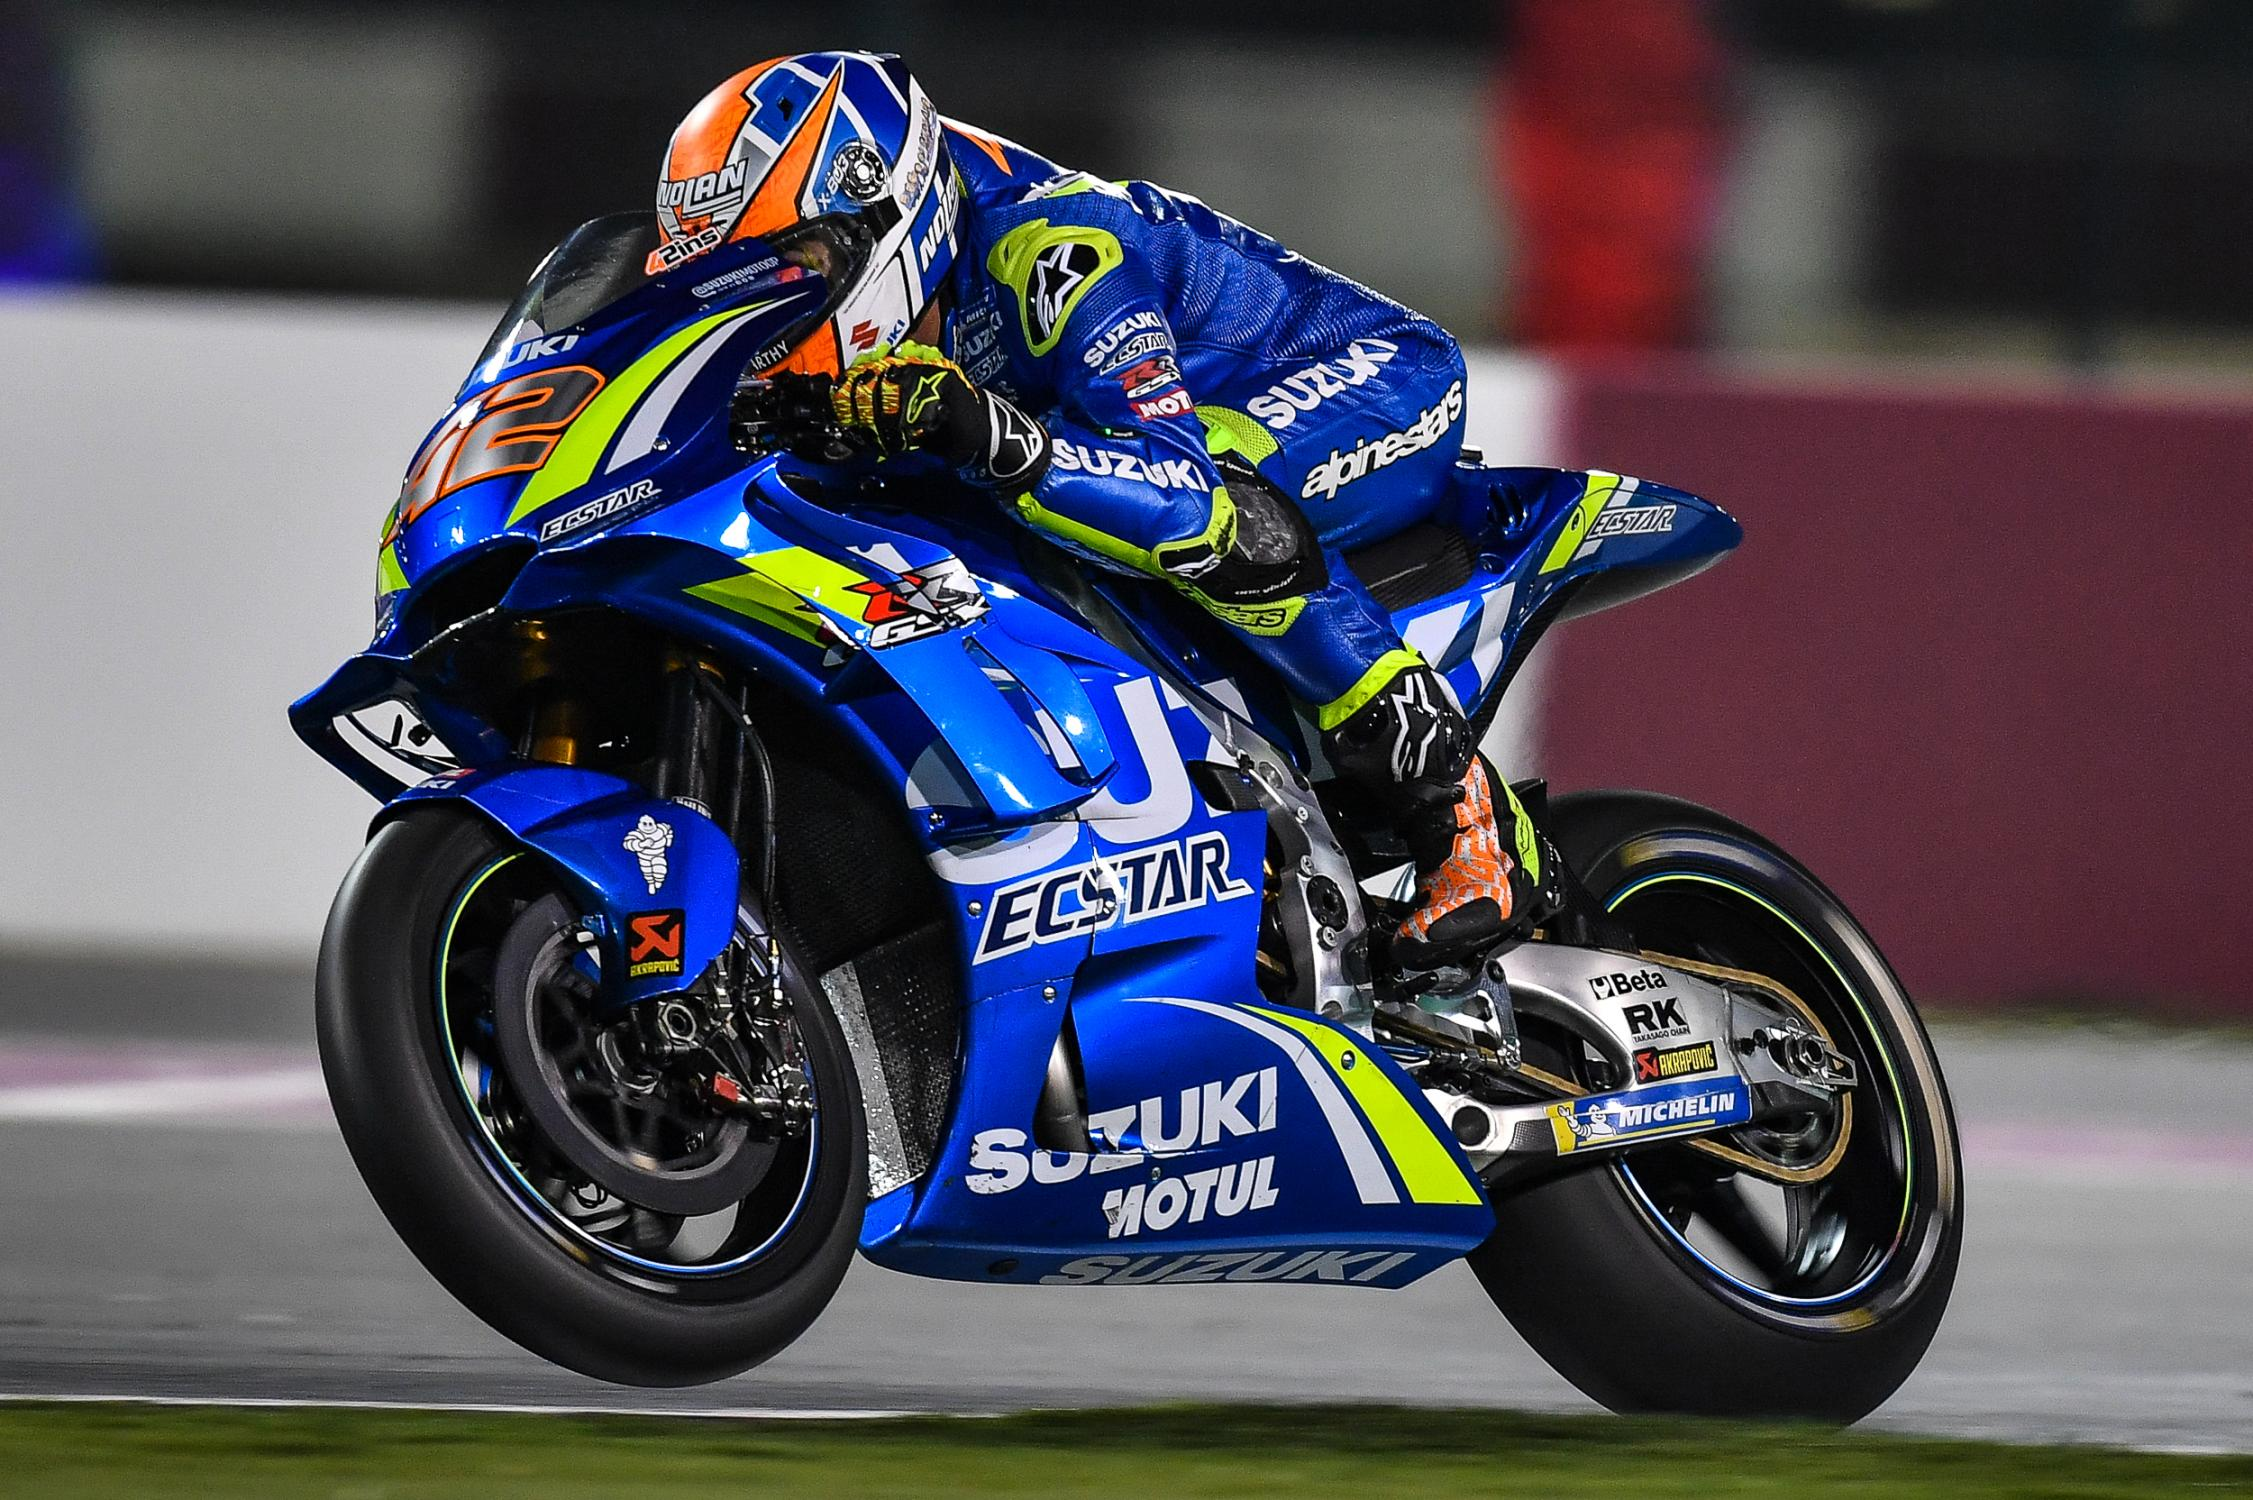 42-alex-rins-esplg5_4606.gallery_full_top_fullscreen.jpg